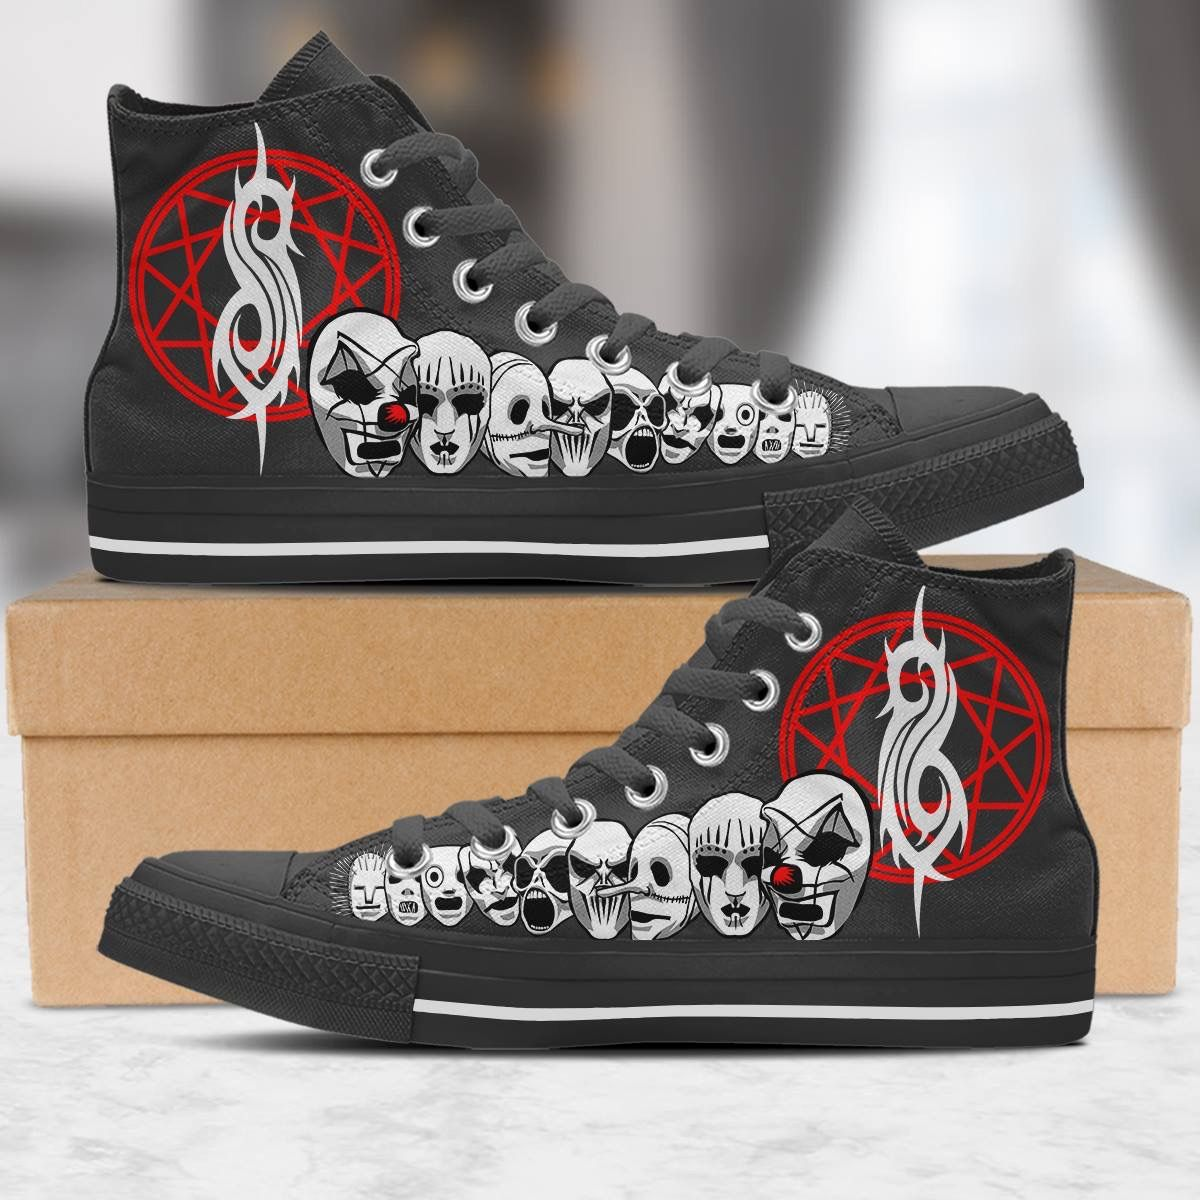 Slipknot Chuck Taylors in 2020 | Band outfits, Slipknot